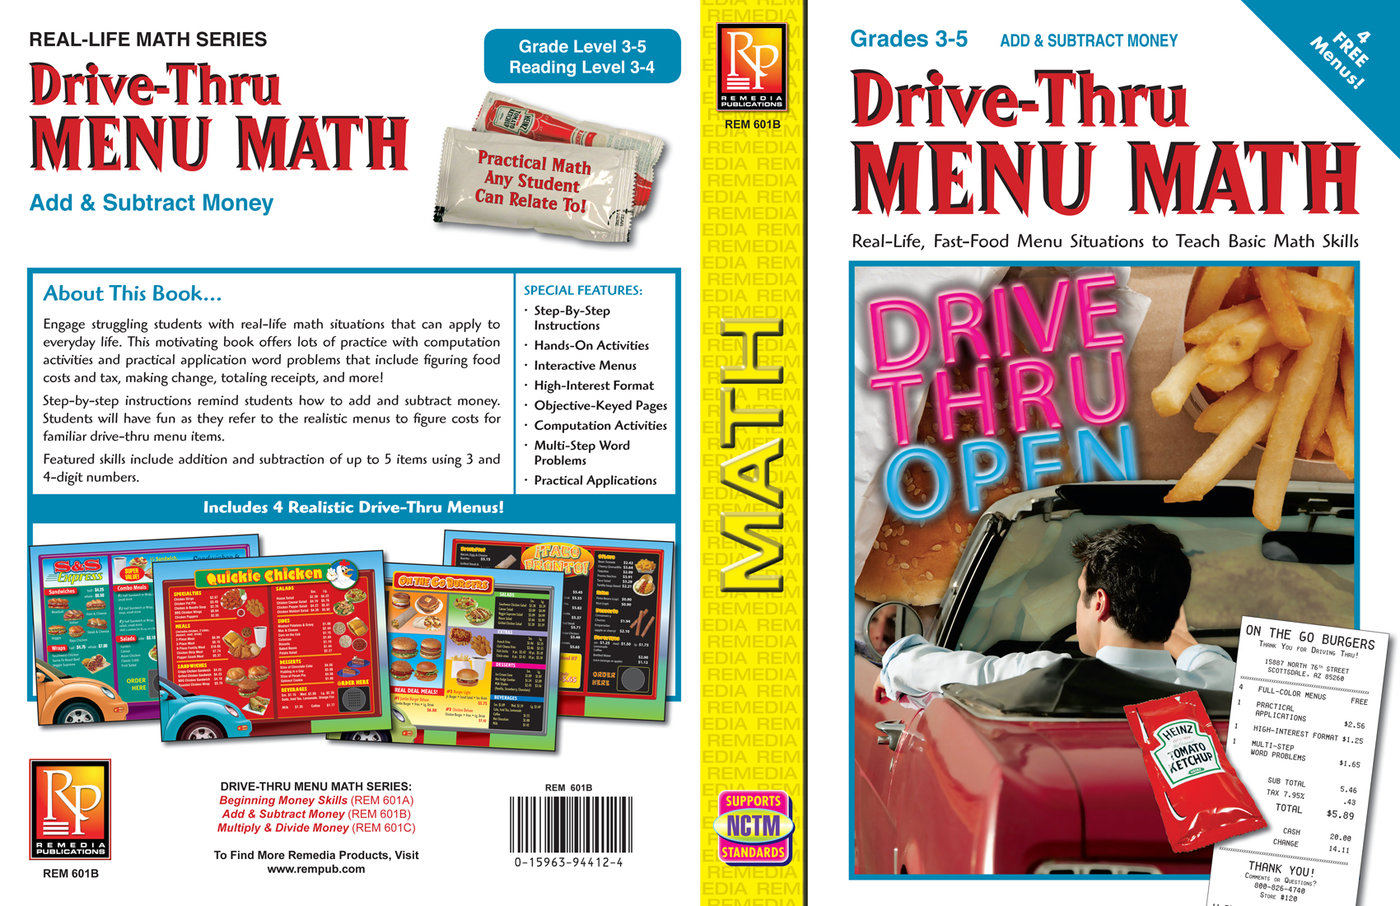 Drive Thru Menu Math By Christina Reville At Coroflot